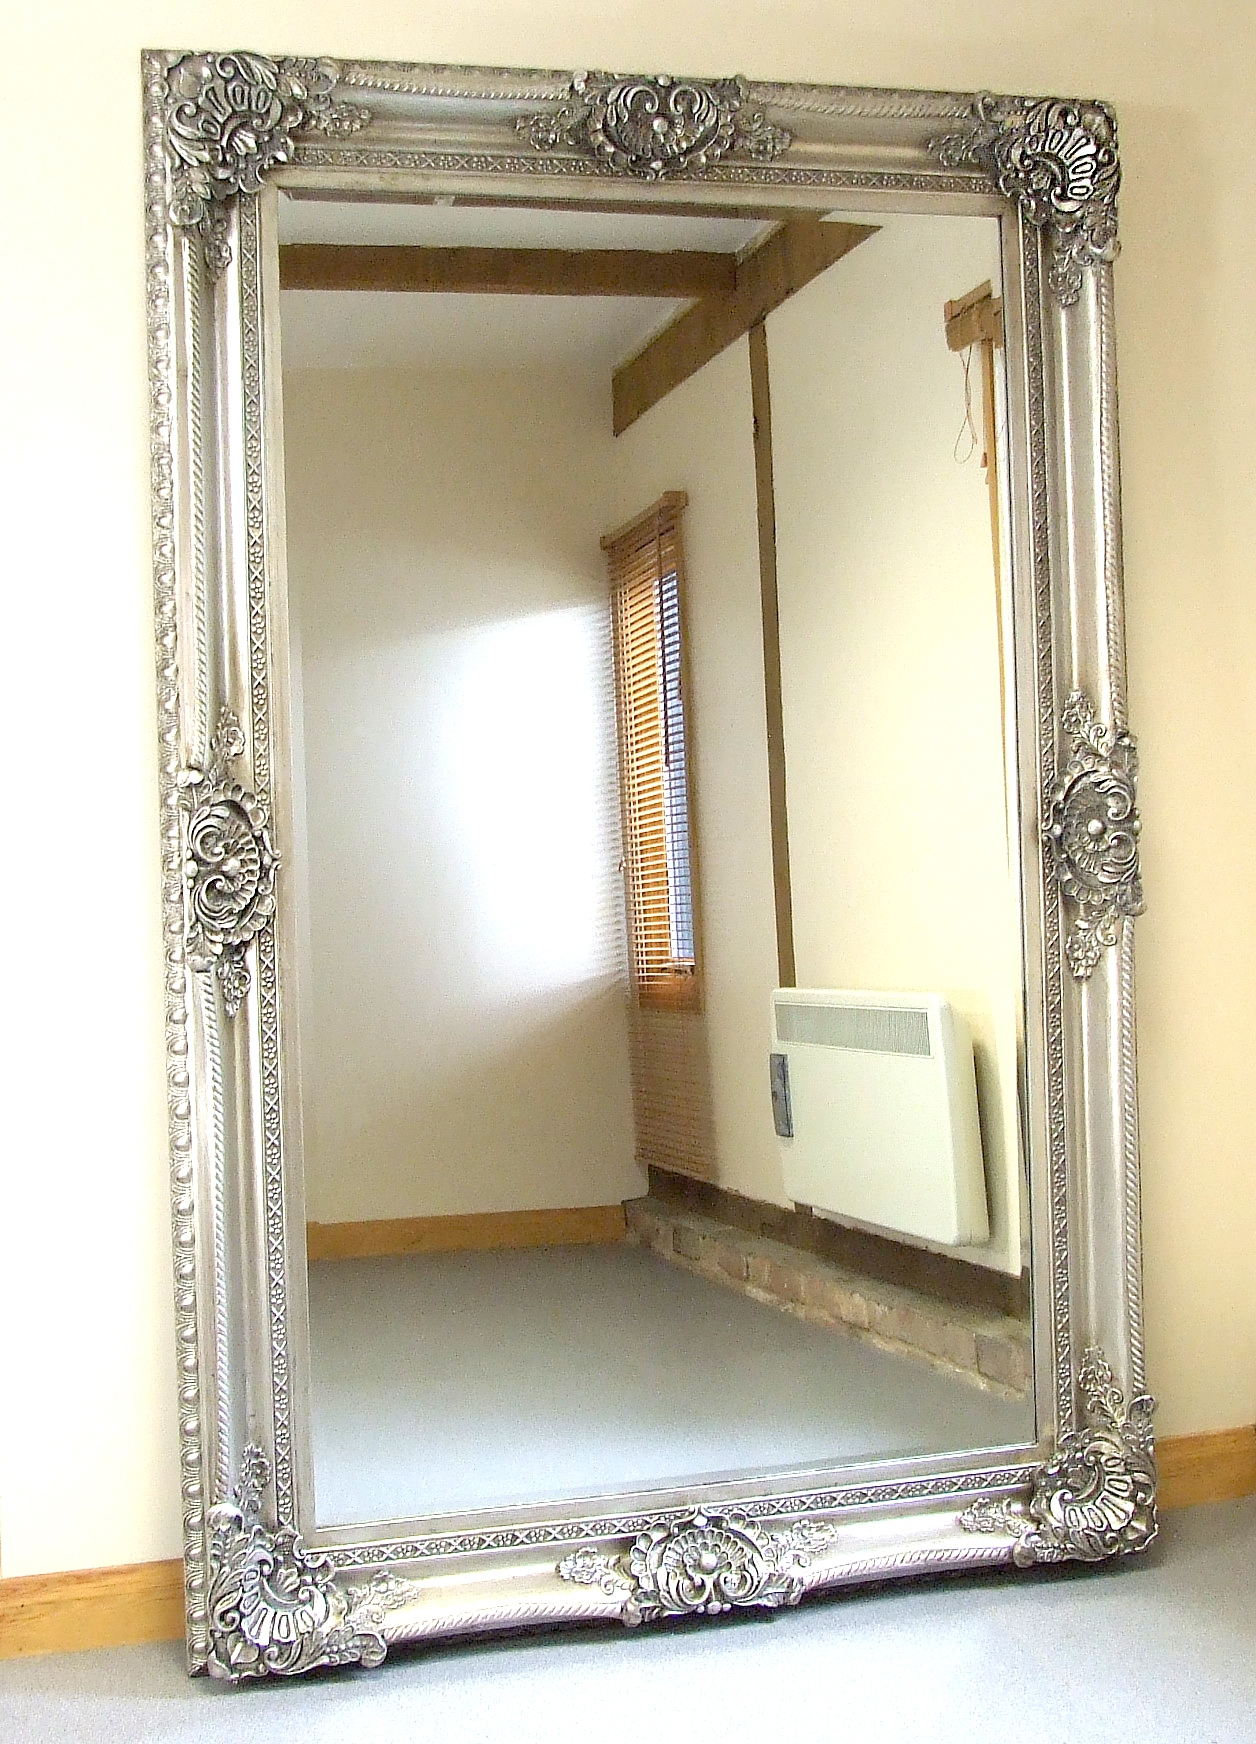 Extra Large Full Length Floor Wall Mirror Extra Large Full Length Floor Wall Mirror flooring full length floor mirror target 1256 X 1744